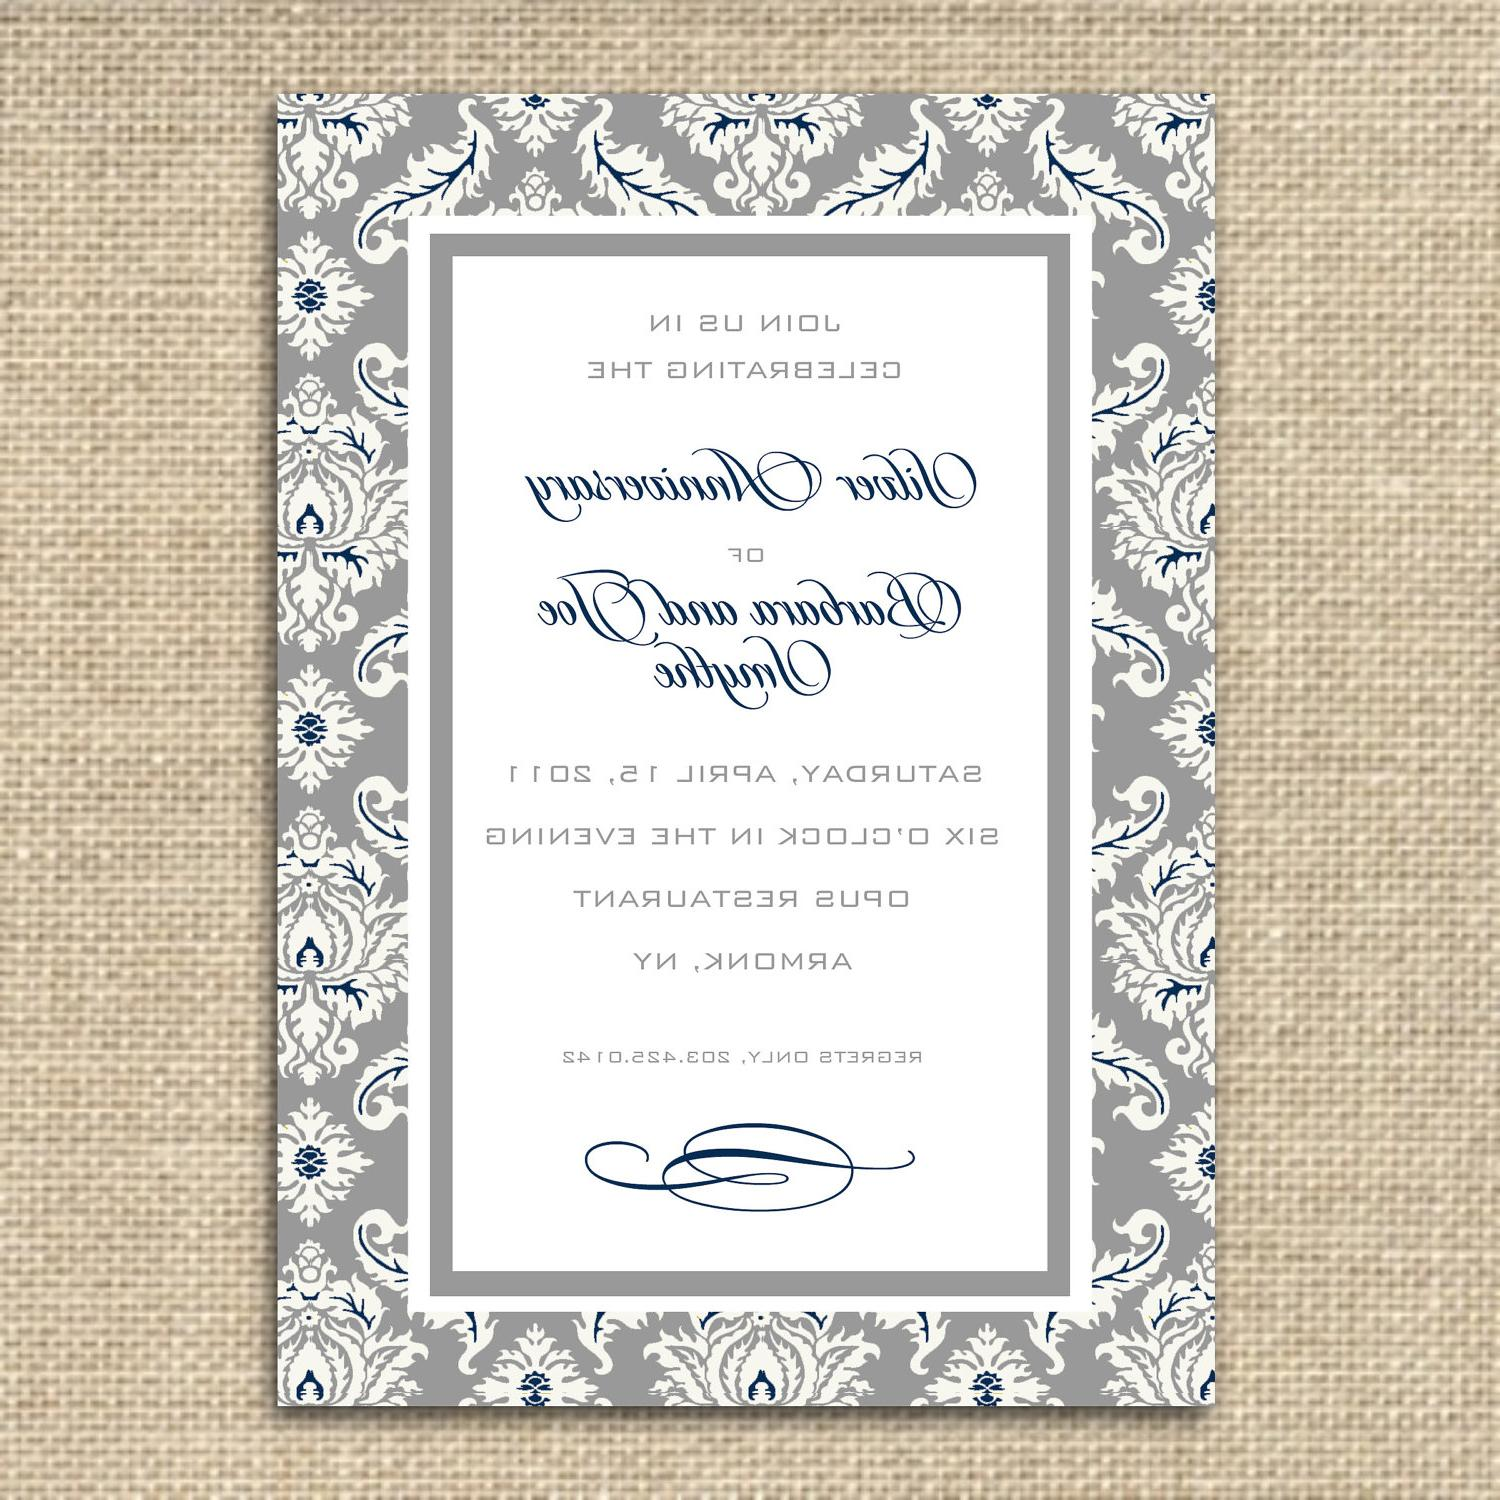 These invitations are perfect